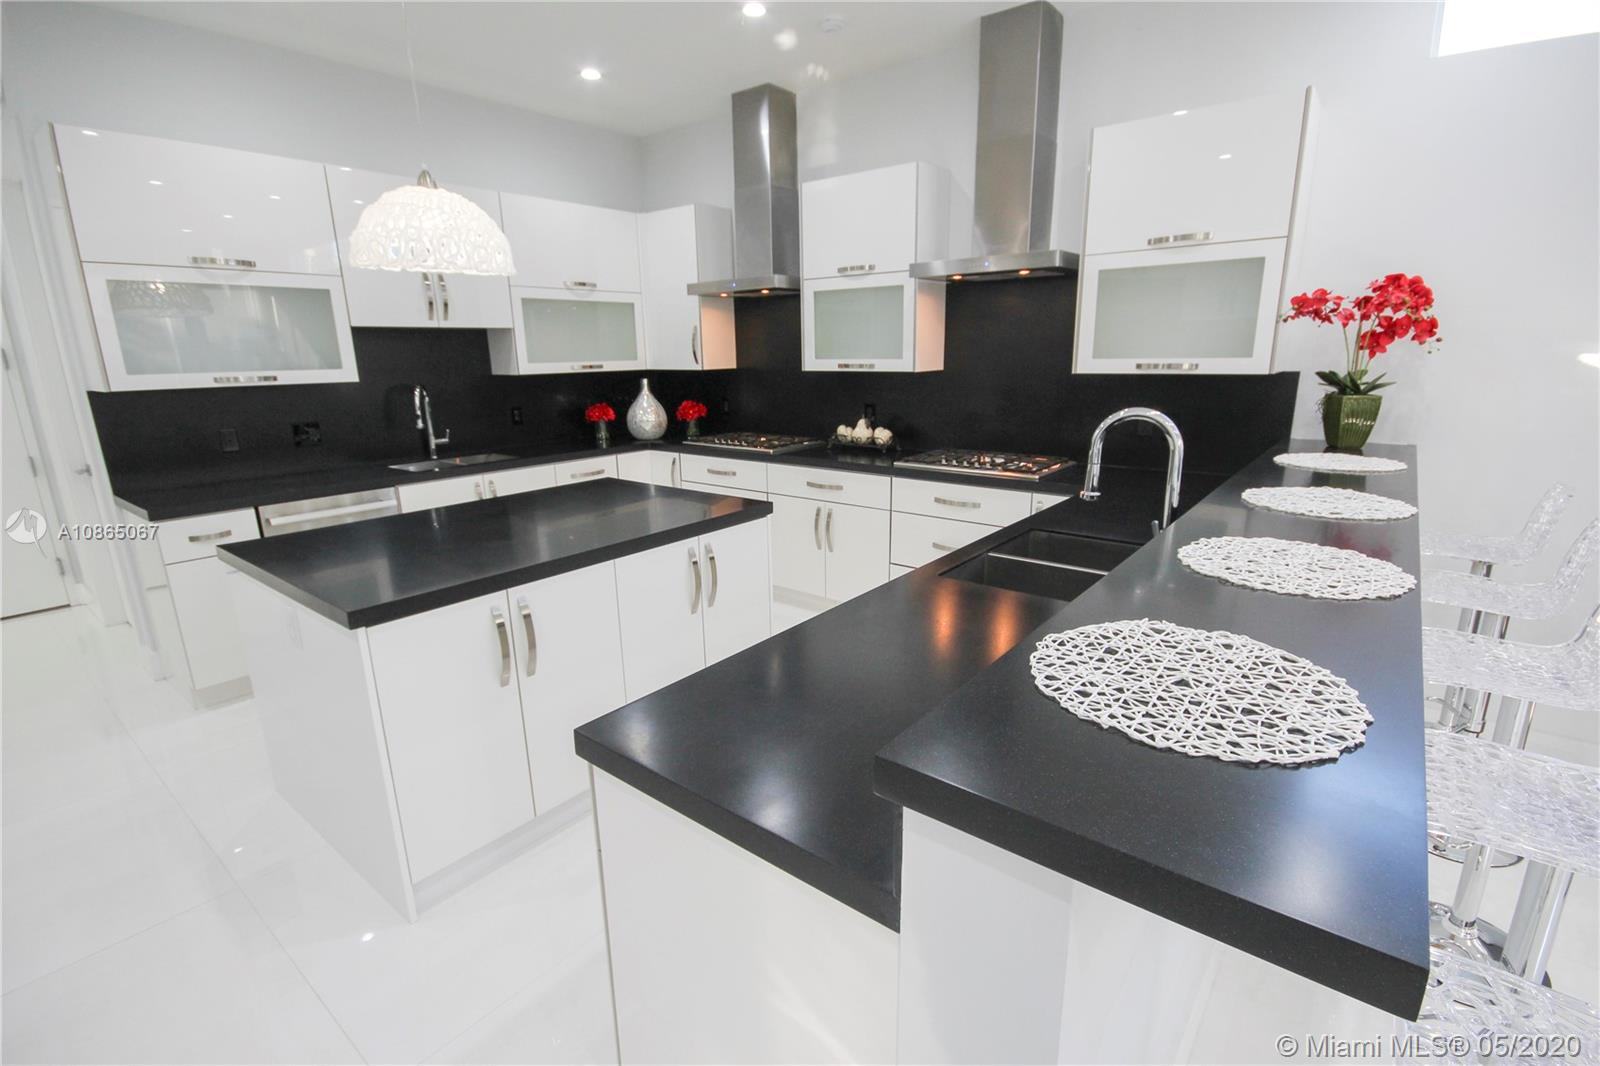 Gourmet kitchen with double range, double sinks, double ovens.